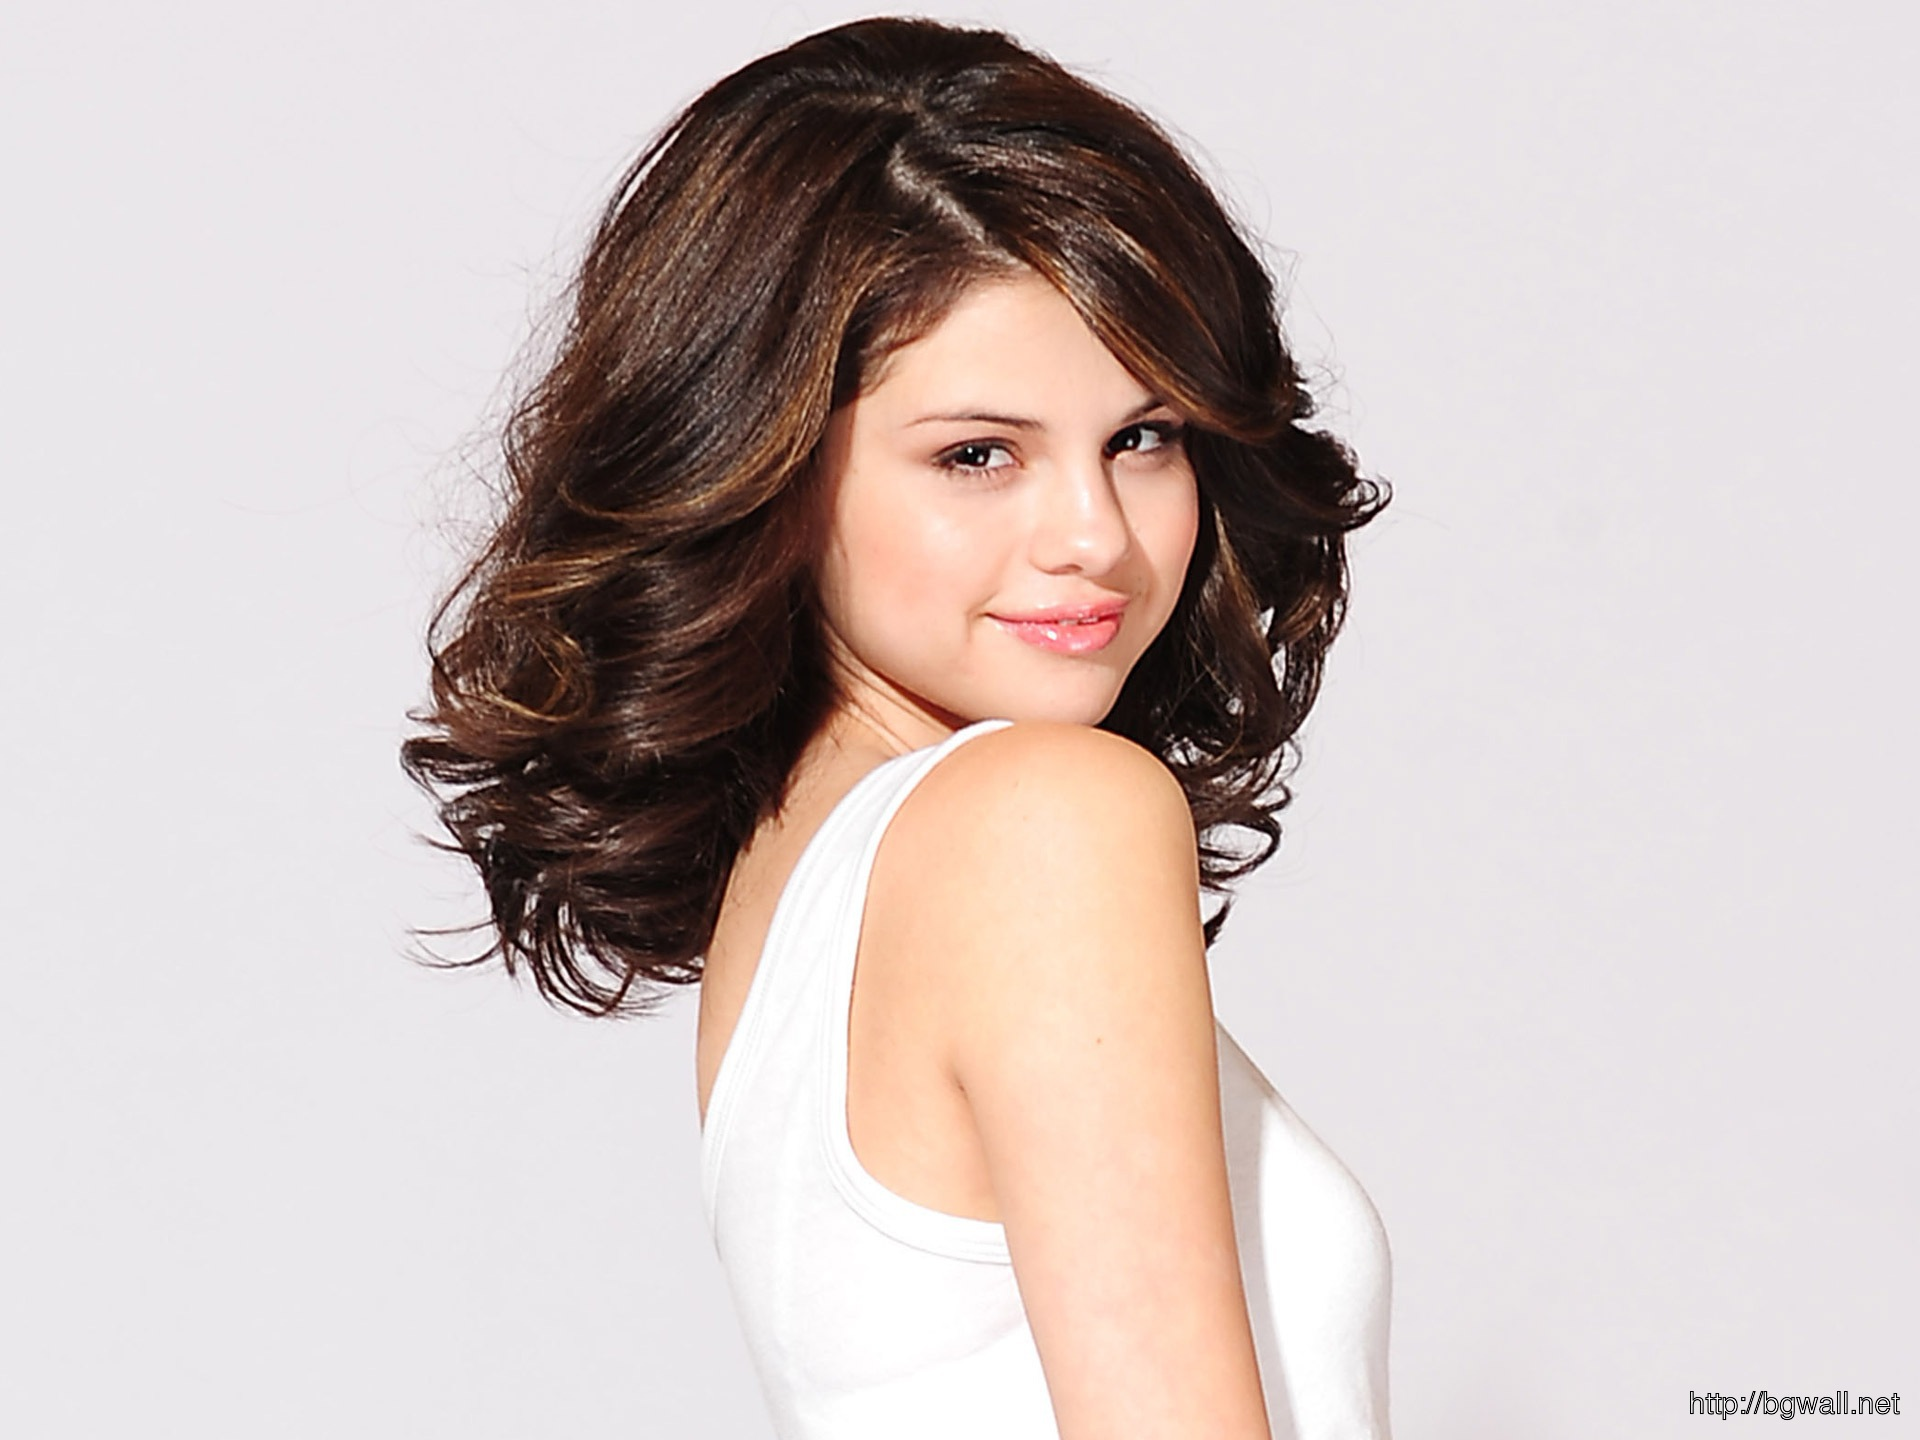 Selena Gomez New Wallpaper Full Size